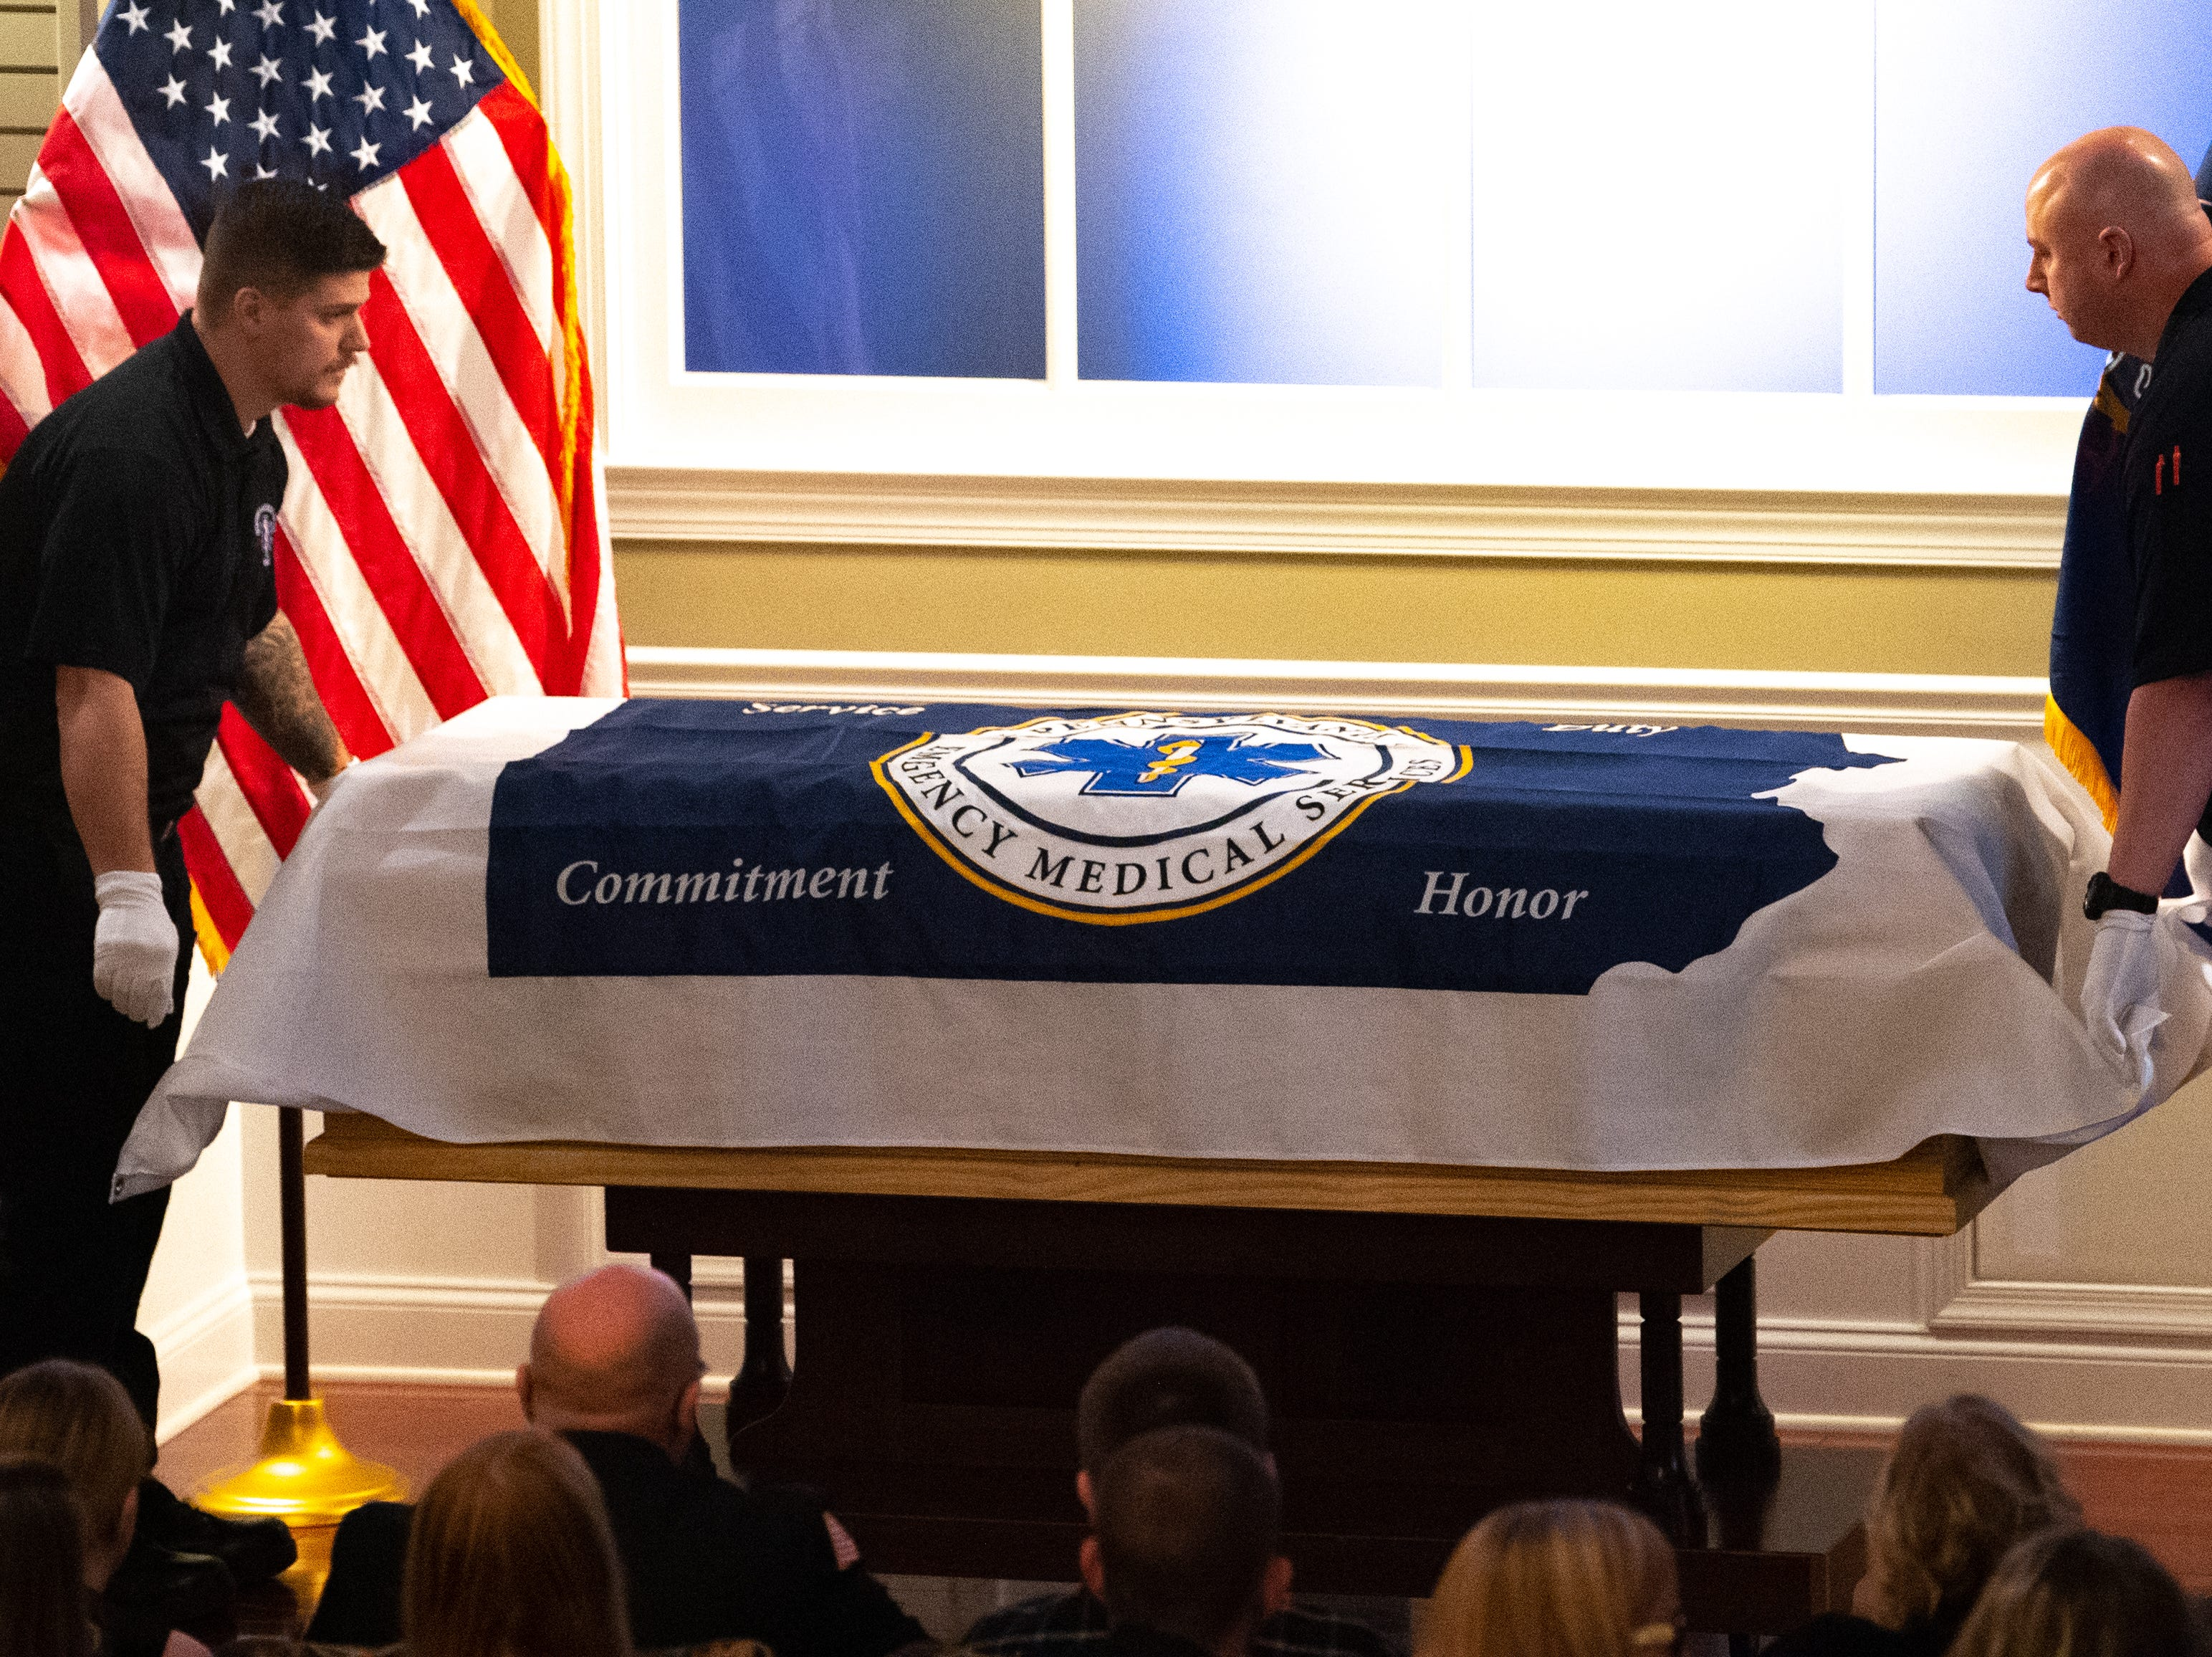 The flag fit the coffin perfectly during the funeral for Robert Kohler Sr. at the Diehl Funeral Home in Mount Wolf, January 4, 2019.